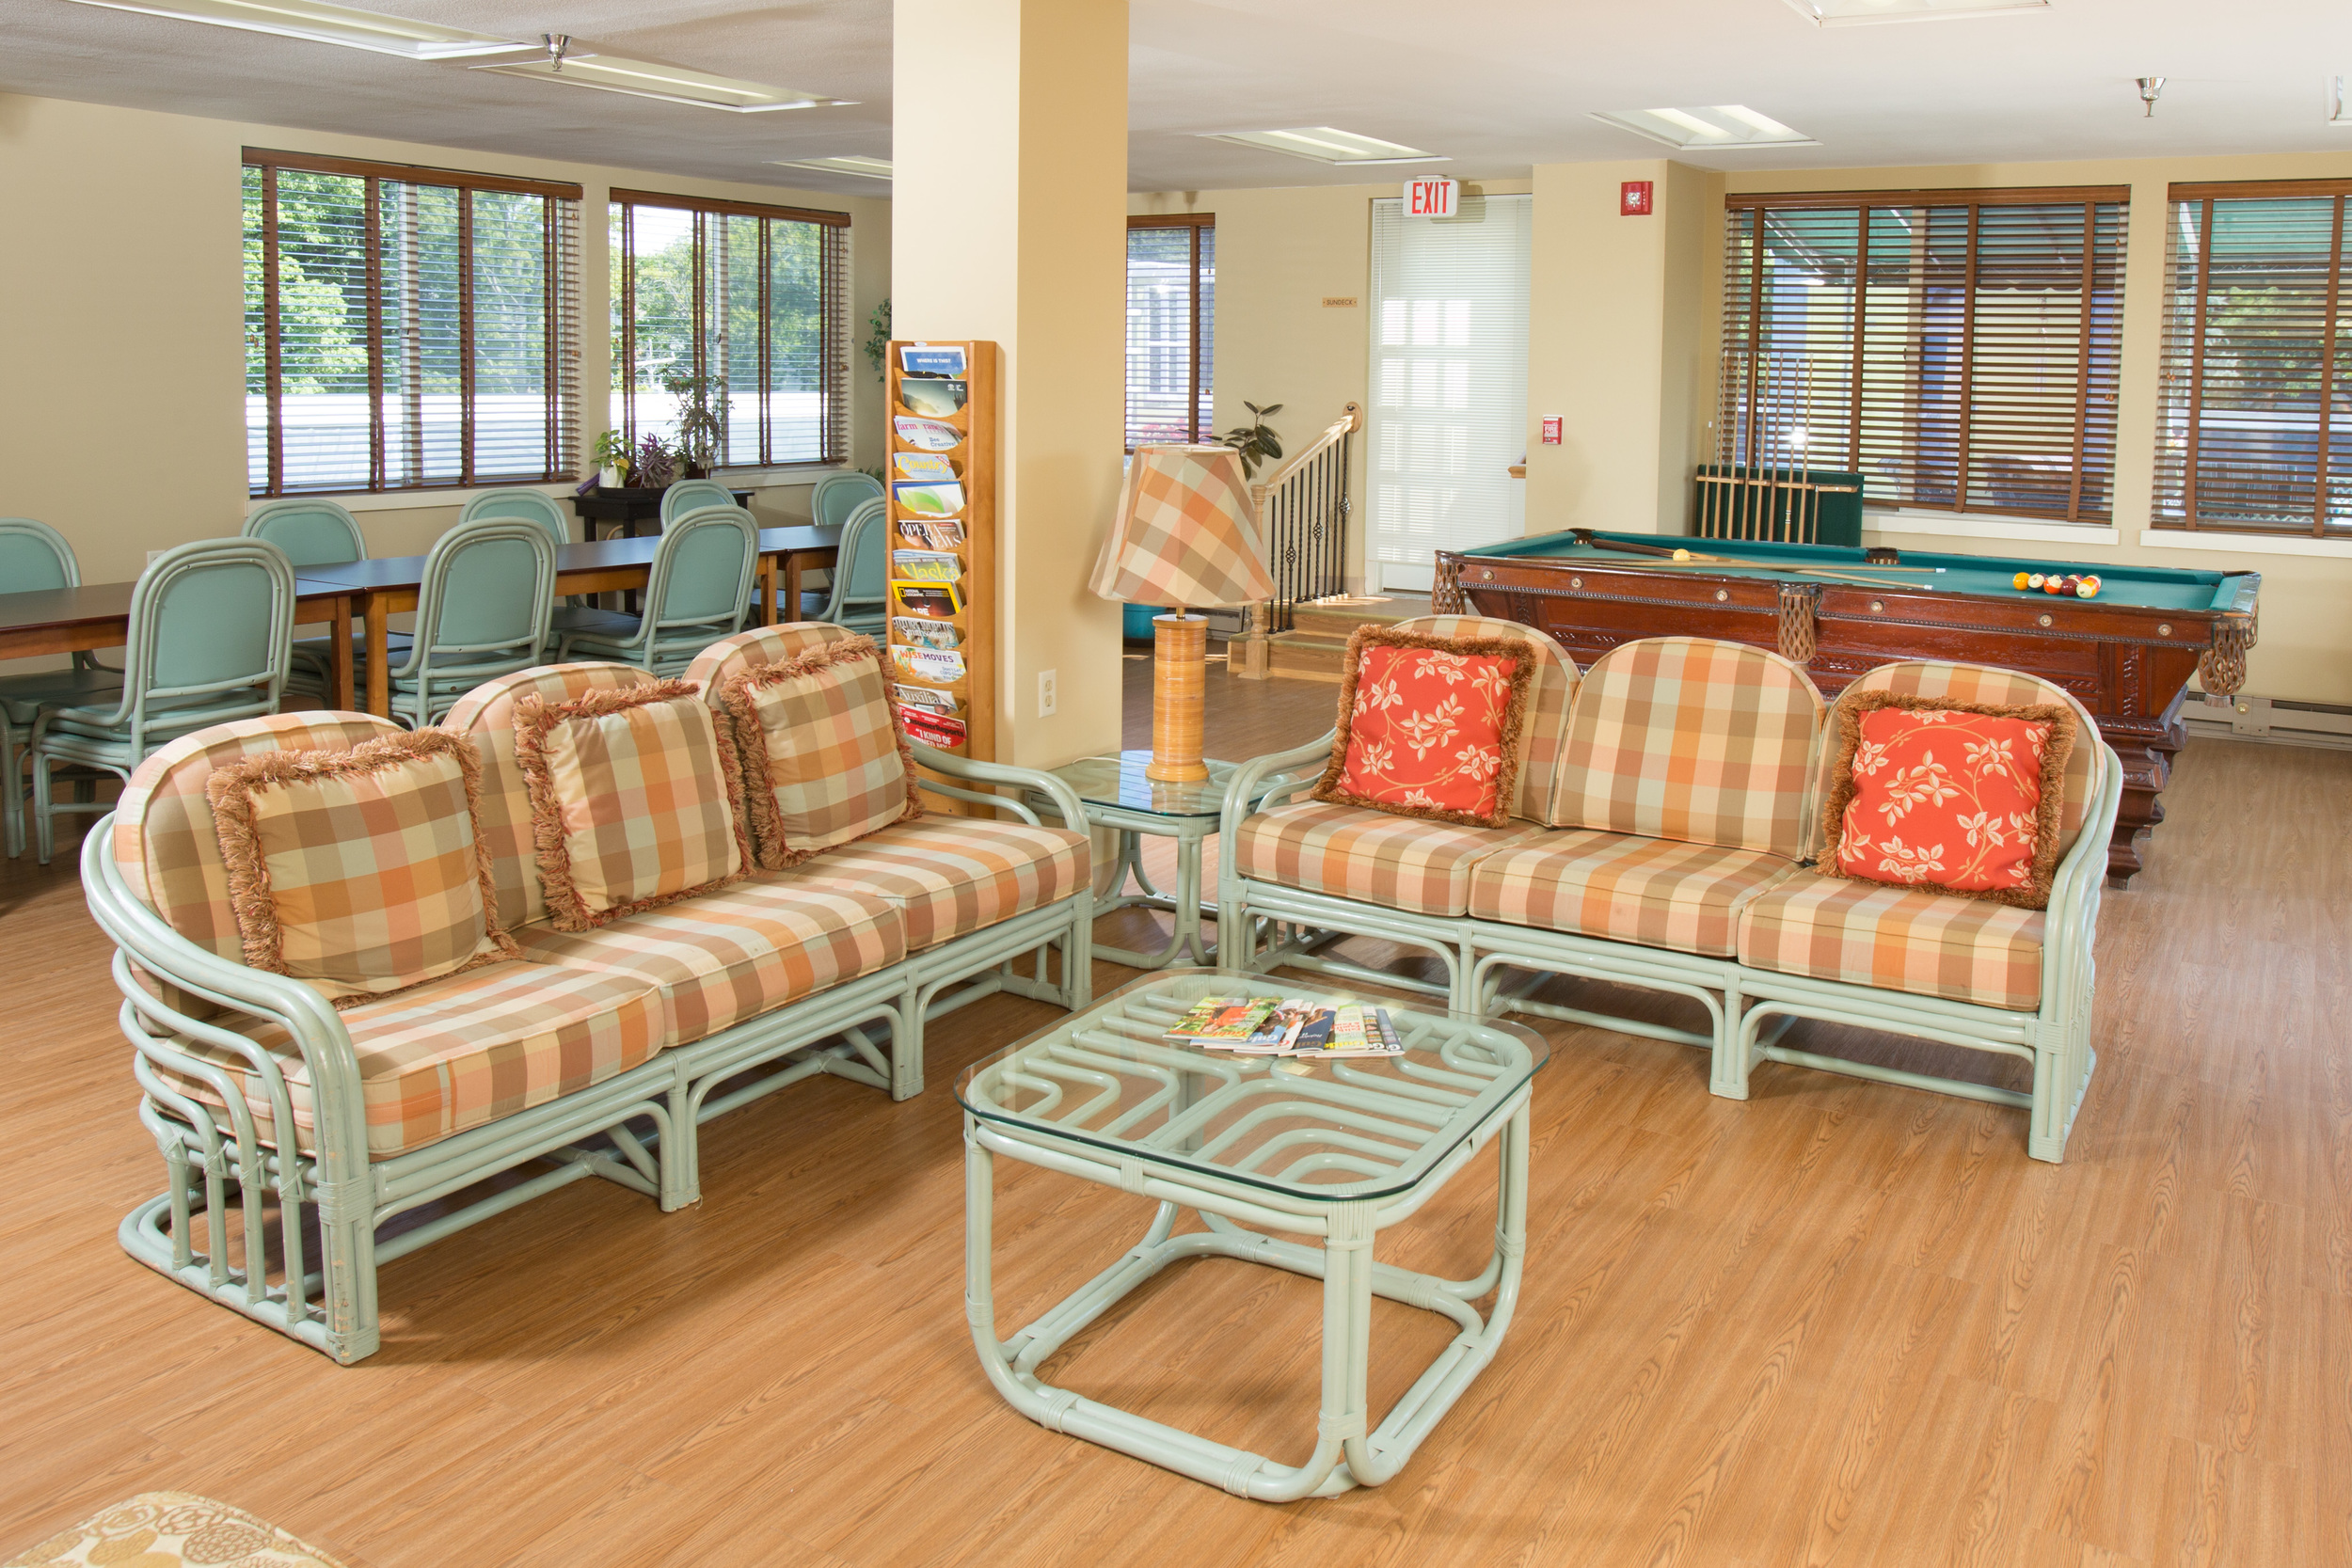 Recreation Room In Our Senior Living Community